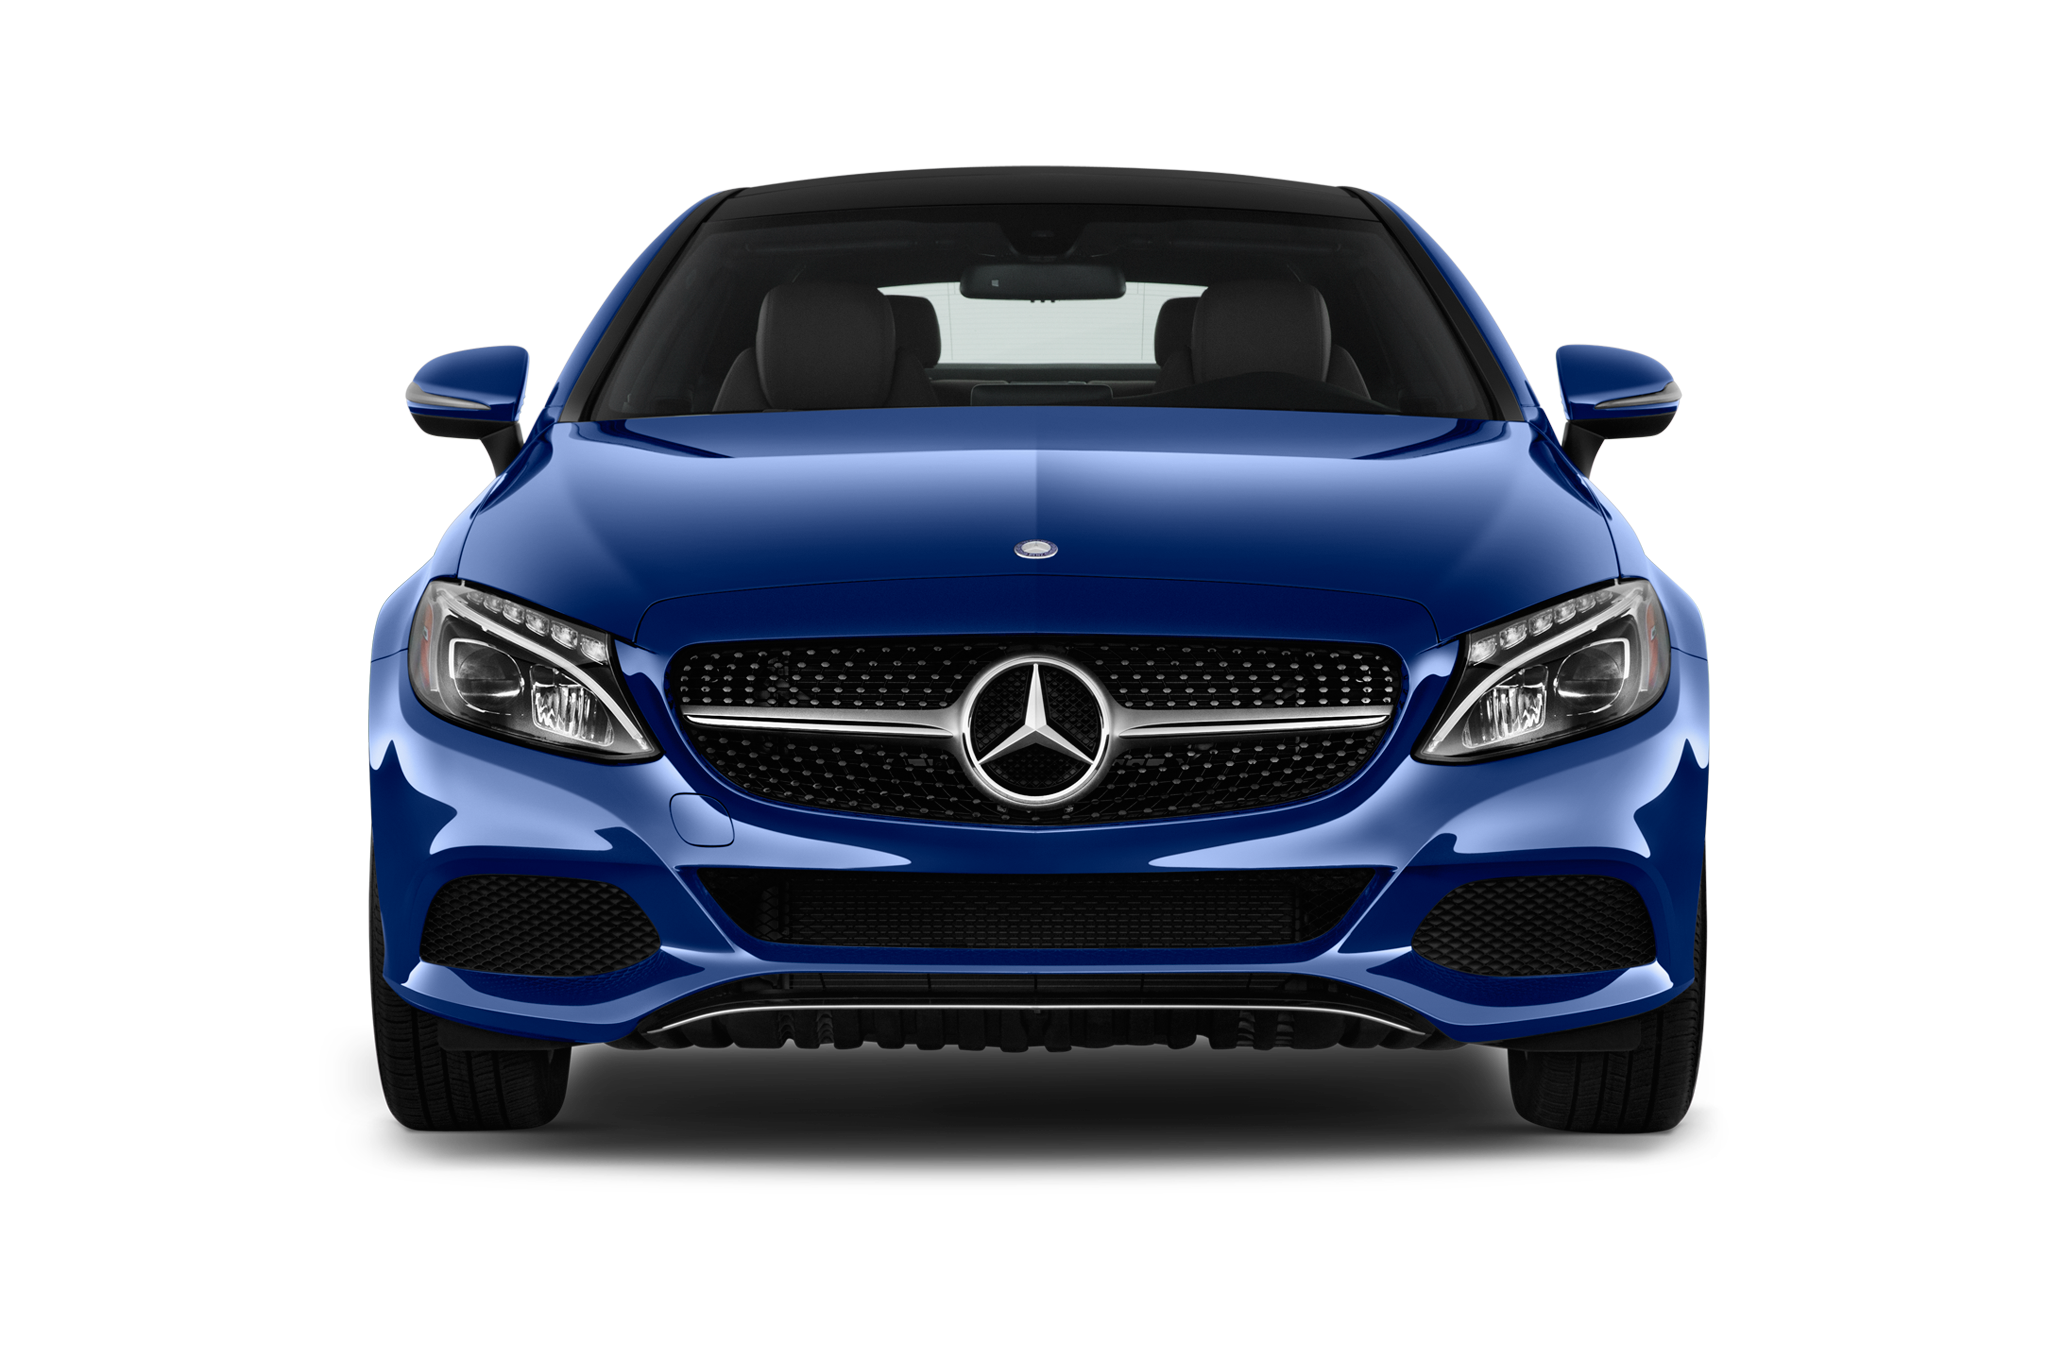 Convertible car clipart vector transparent stock 2018 Mercedes-Benz C-Class Spied with Tweaks | Automobile Magazine vector transparent stock